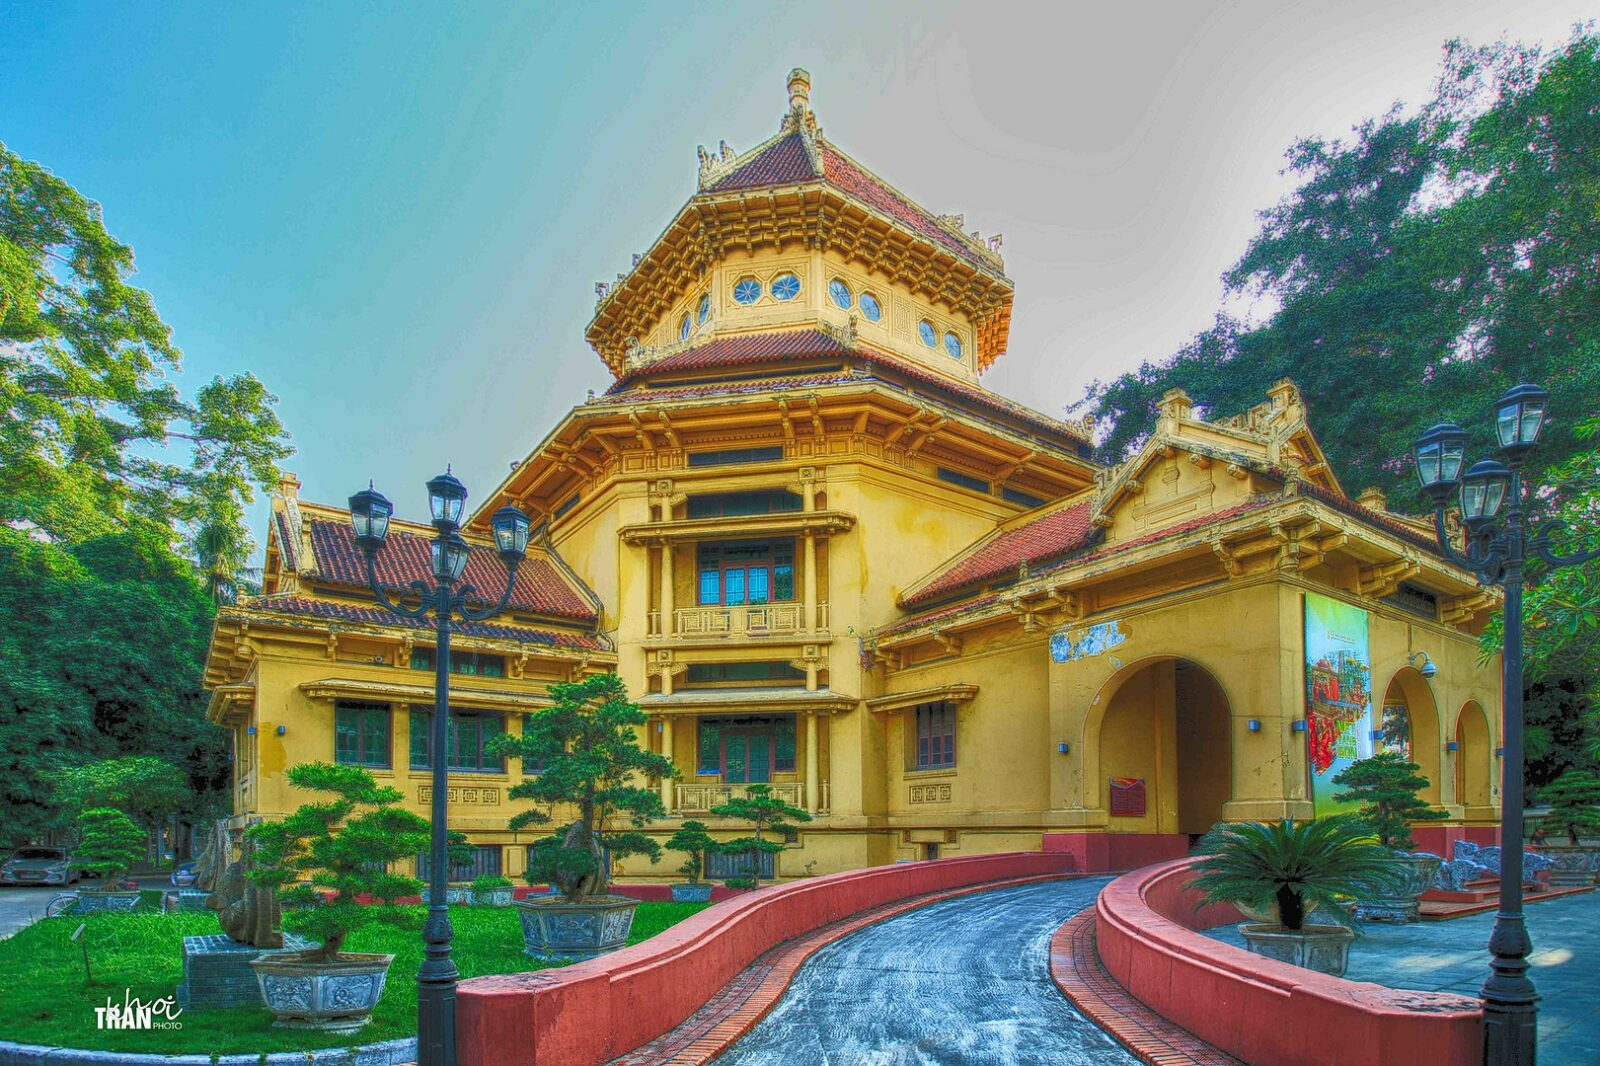 Image of the front entrance to the Vietnam National Museum of History in Hanoi, Vietnam